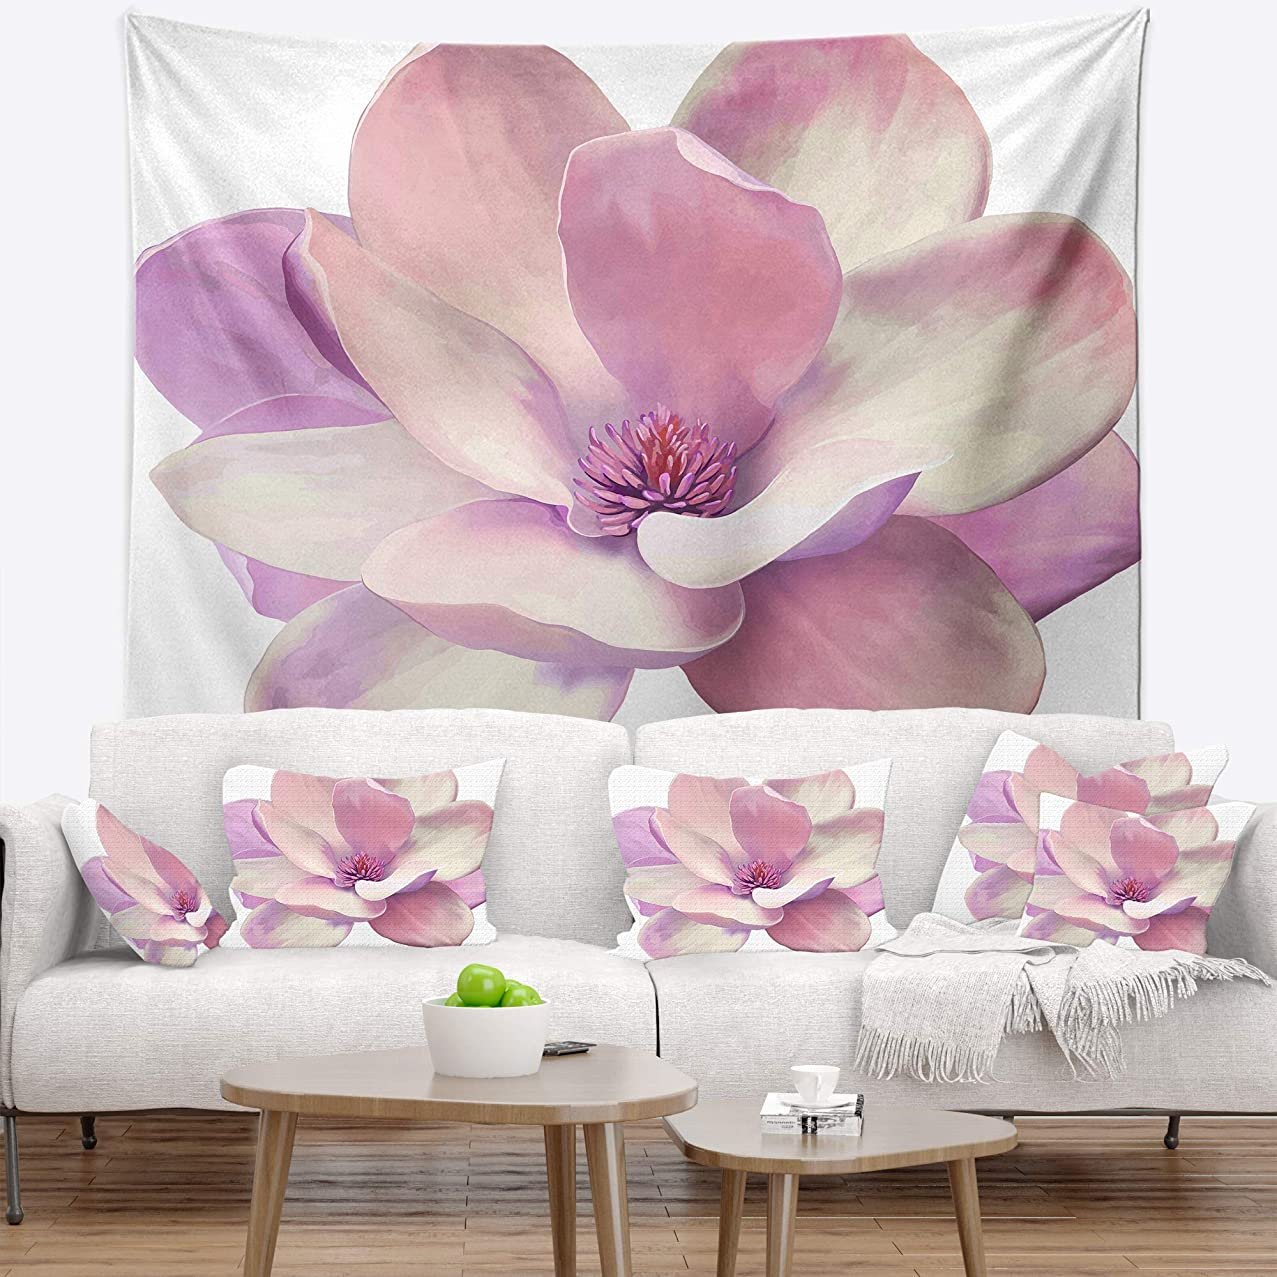 Designart TAP14228-50-60 ' Cute Light Pink Magnolia Flowers Tapestrywork Blanket Décor Art for Home and Office Wall Tapestry Large: 50 in. x 60 in. Created On Lightweight Polyester Fabric